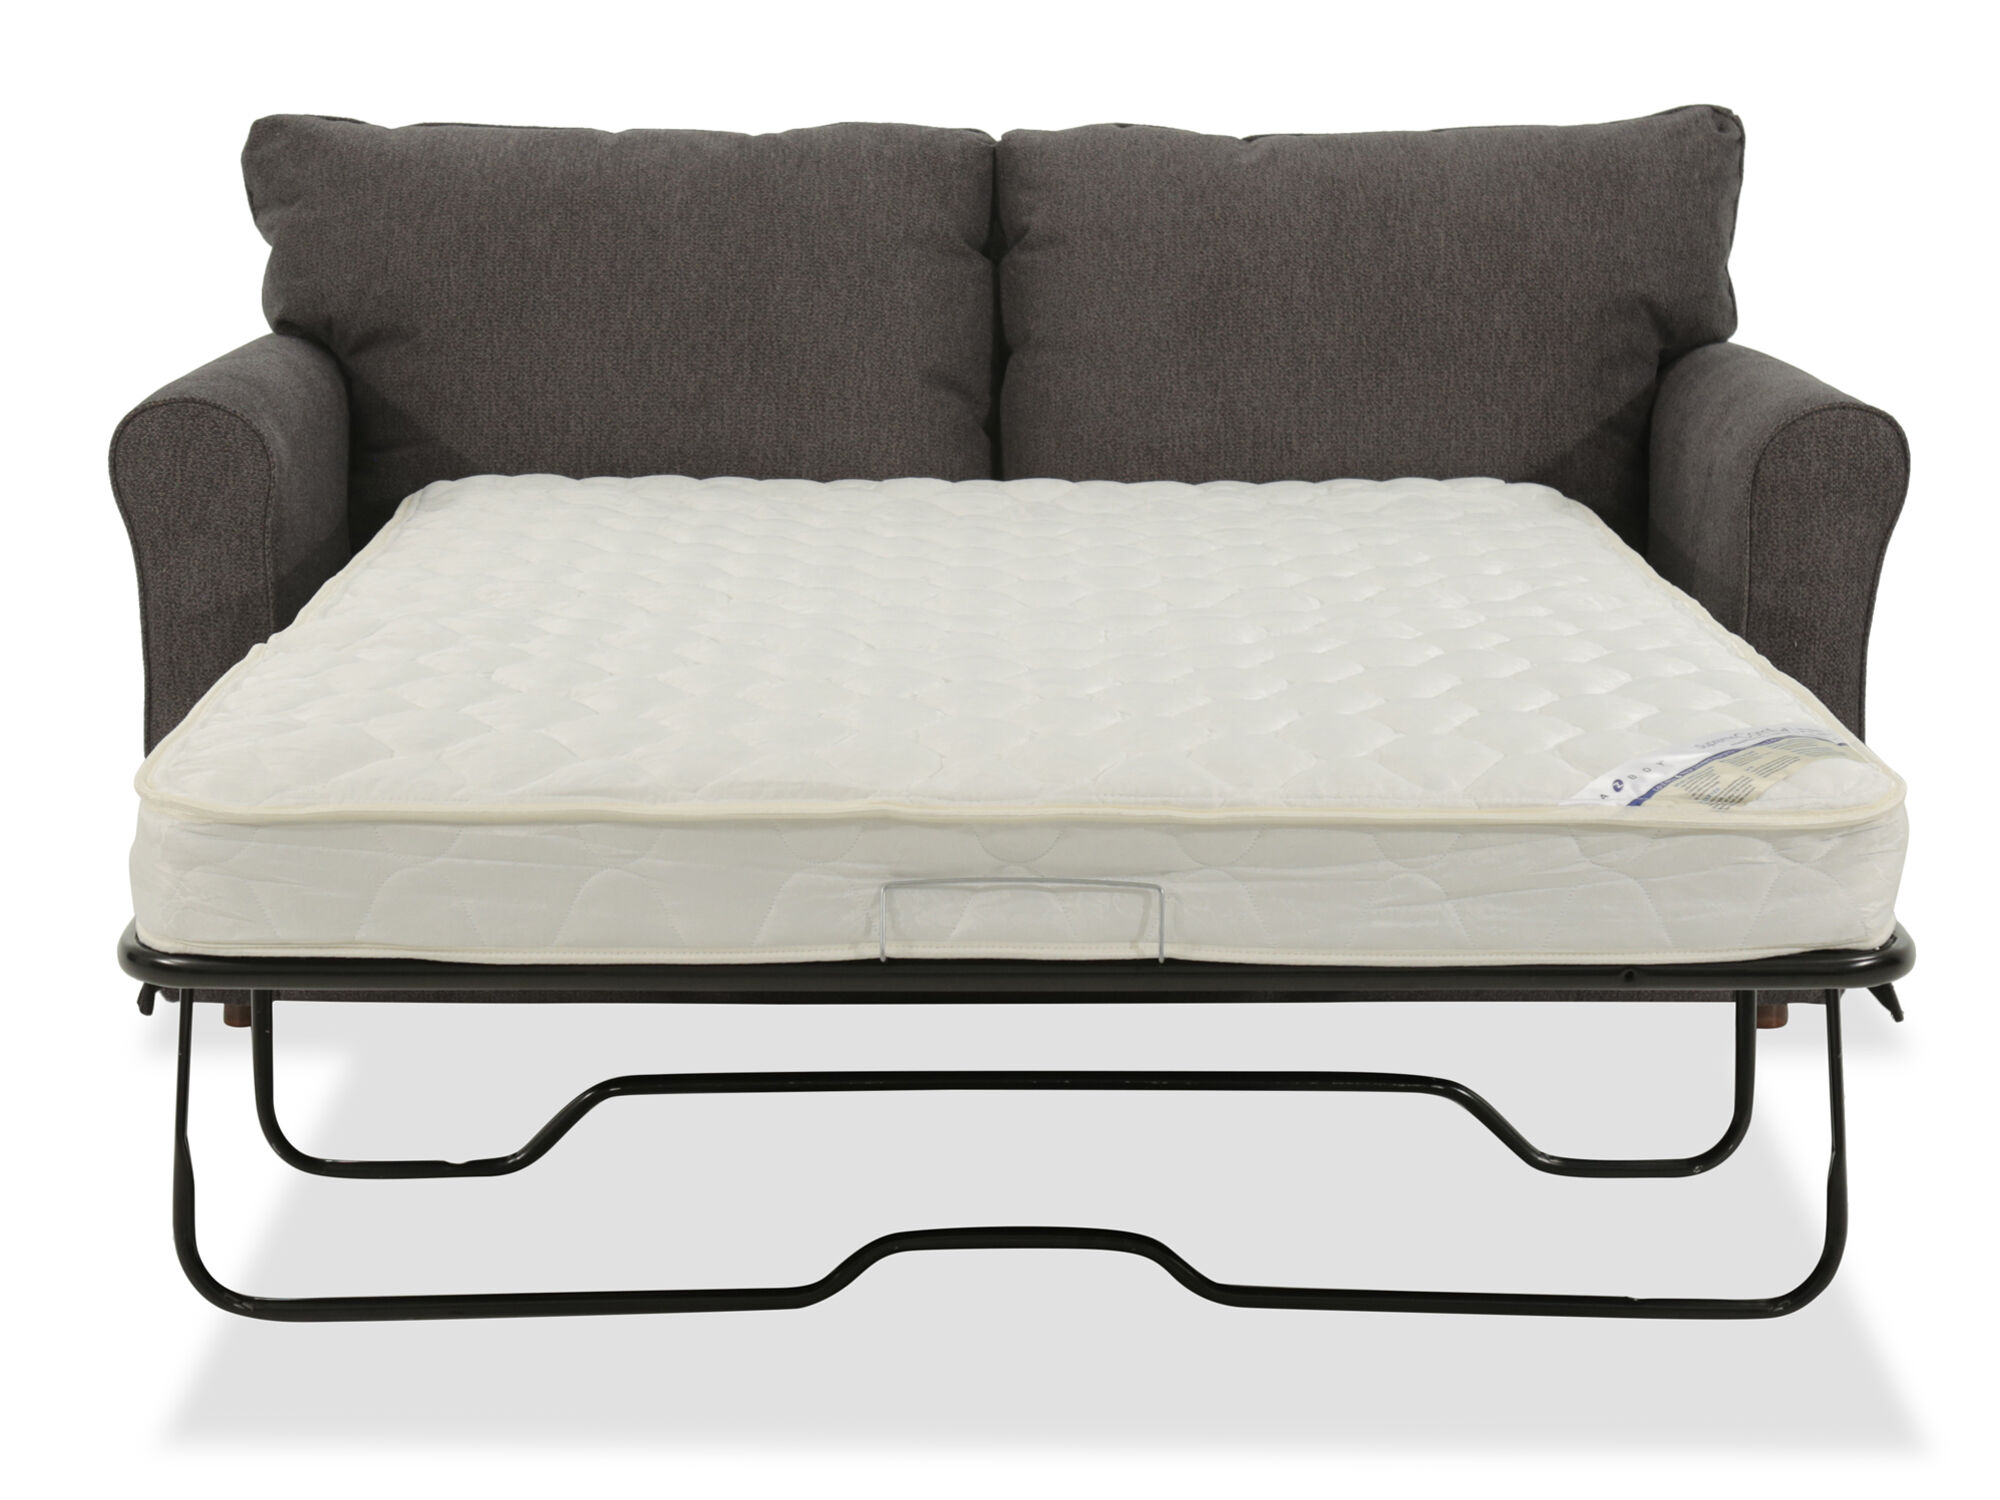 casual 73 5 full sleeper sofa in gray mathis brothers furniture rh mathisbrothers com comfy leather sleeper sofa comfy leather sleeper sofa